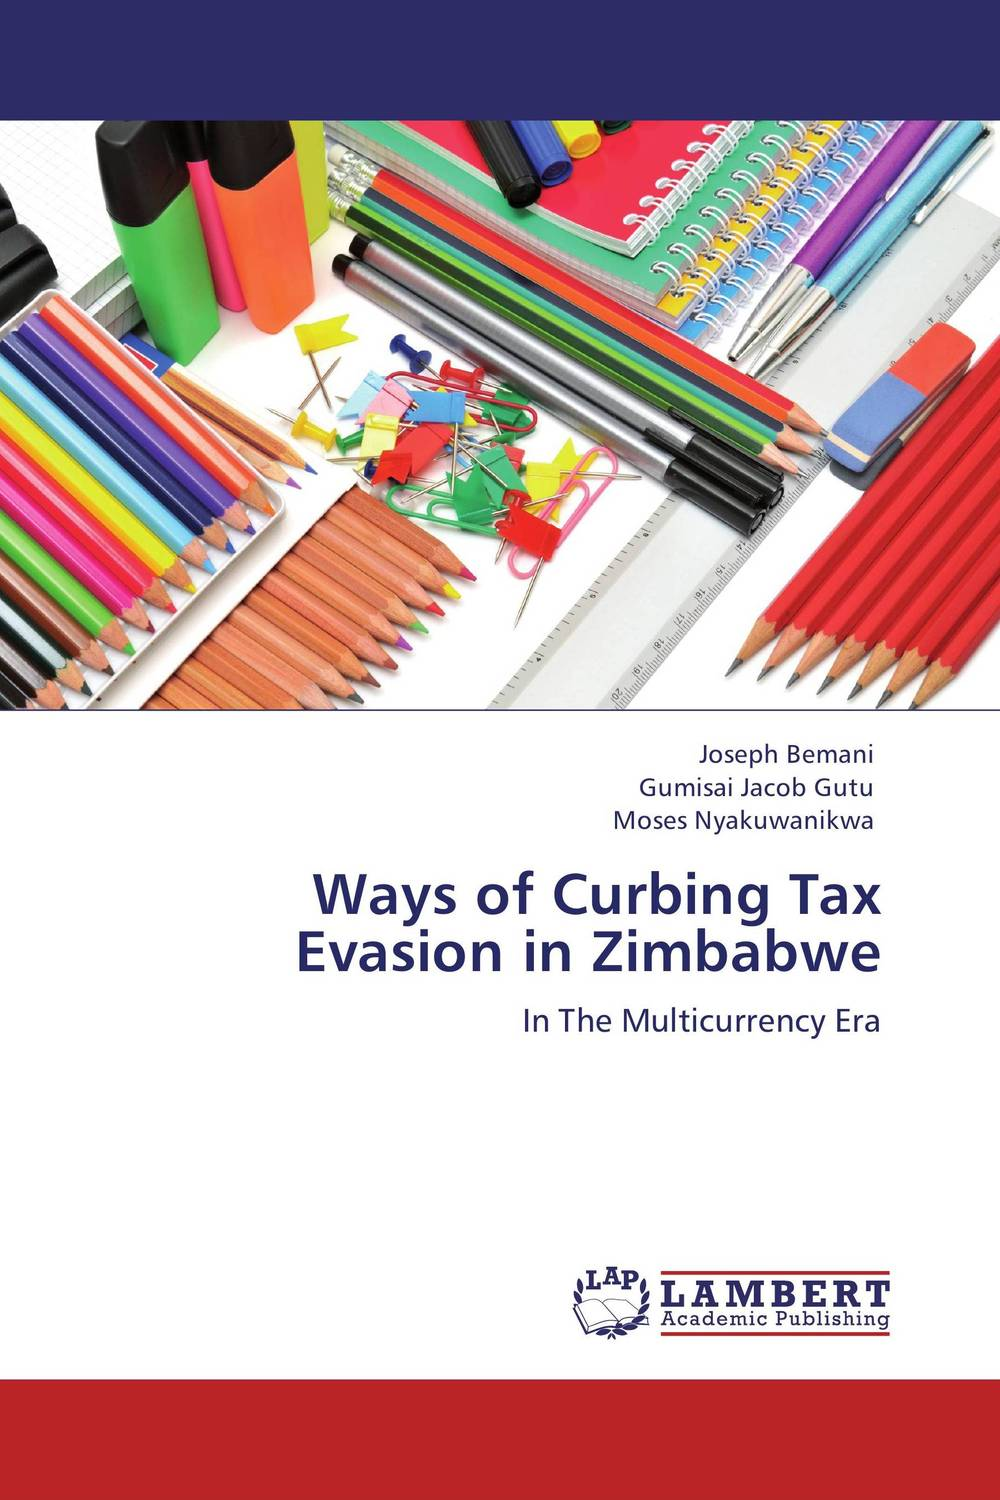 Ways of Curbing Tax Evasion in Zimbabwe